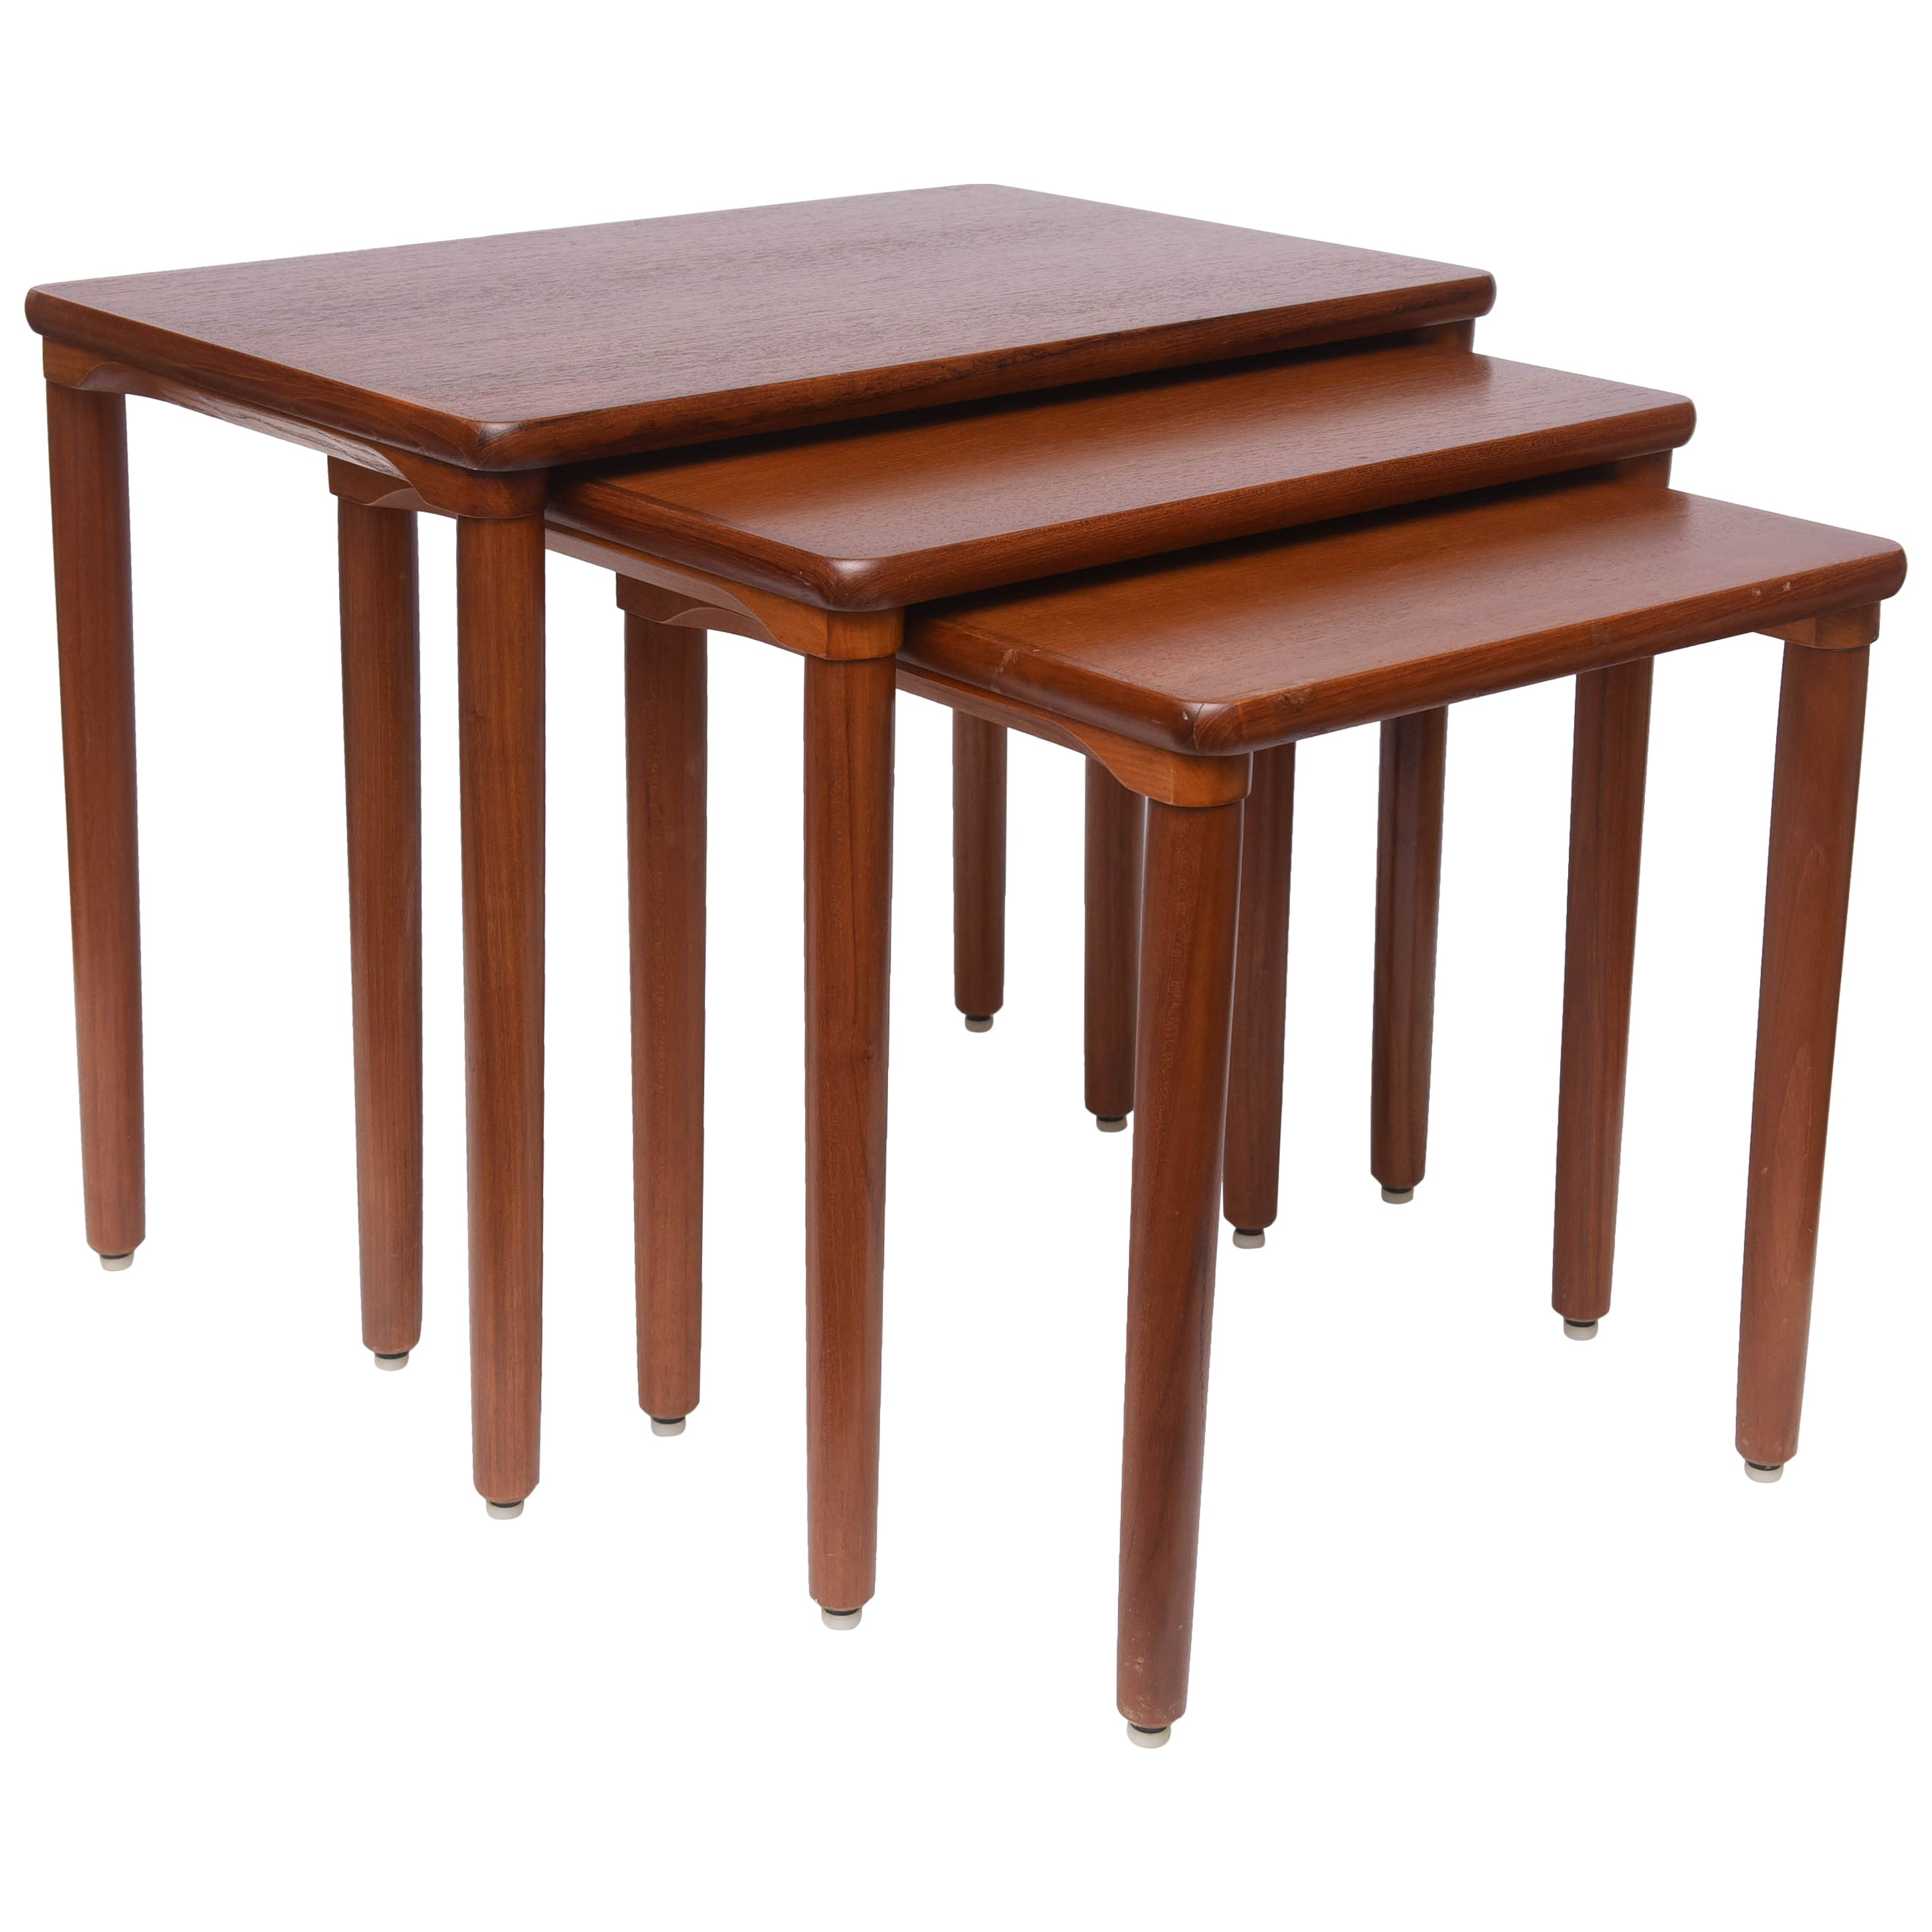 Danish Teak Nesting Tables by EW Bach, 1960s, Denmark